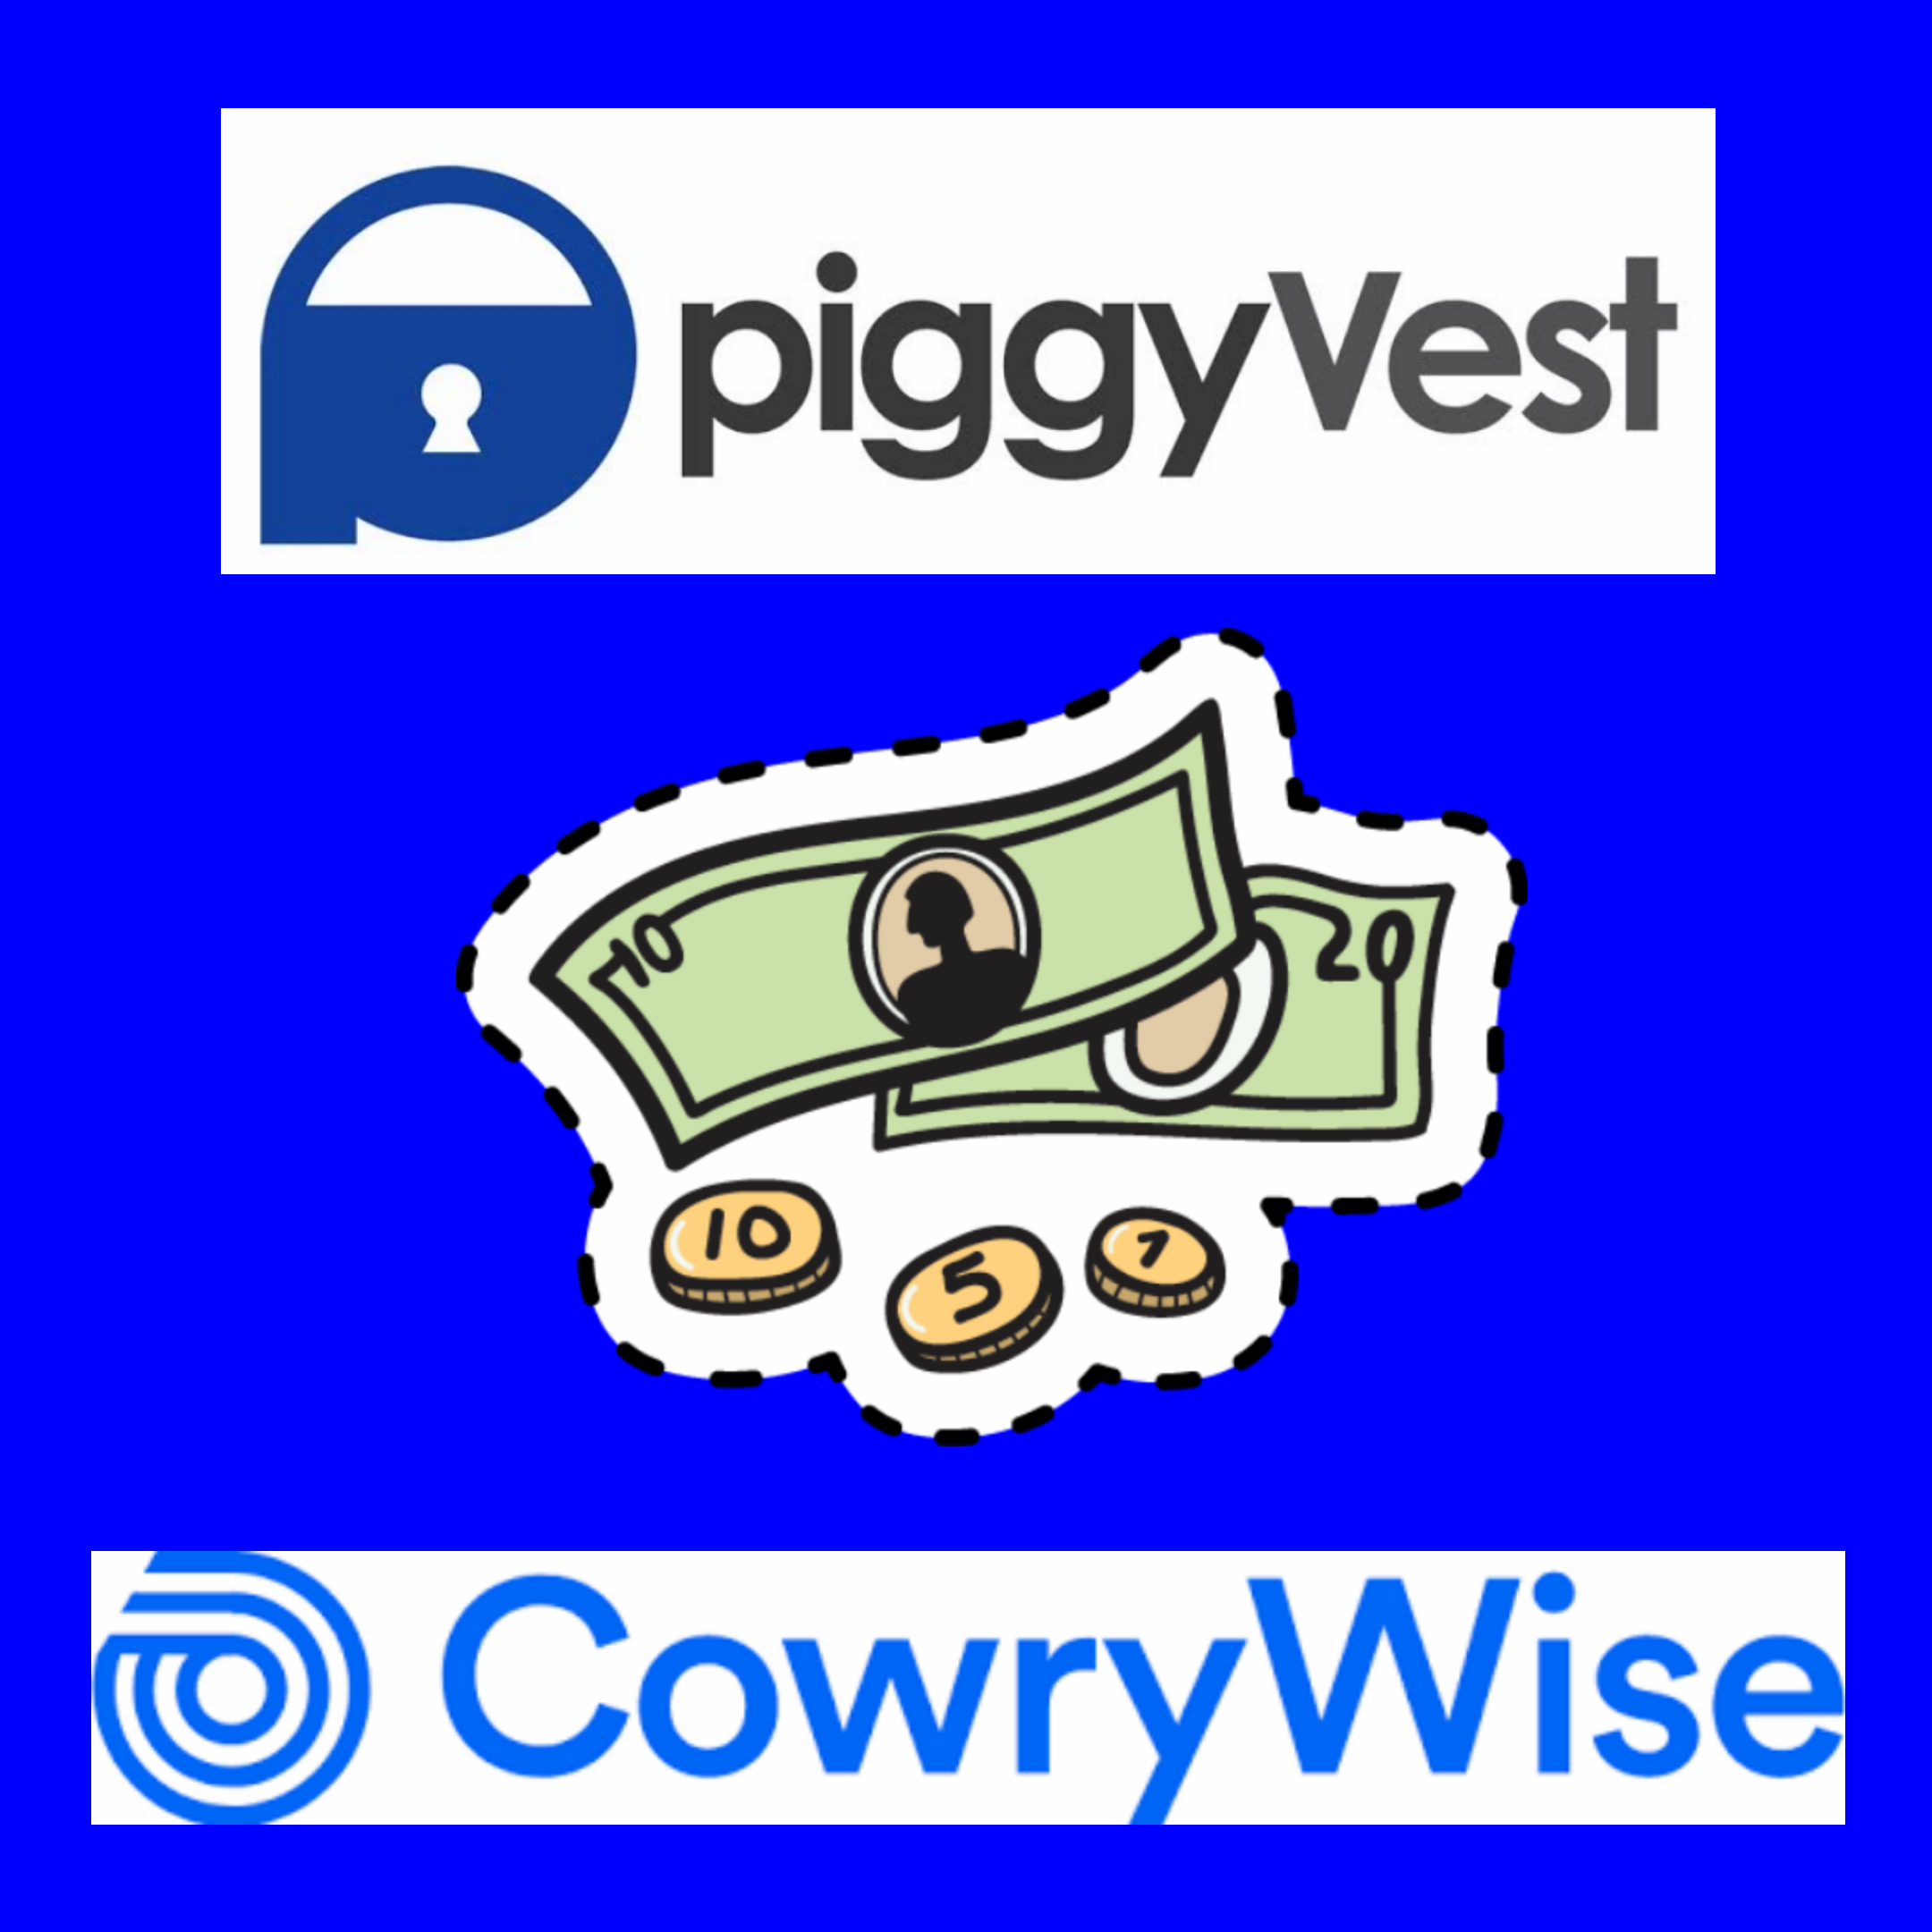 Piggyvest And Cowrywise: The  Youthful Digital Way To Financial Prudence